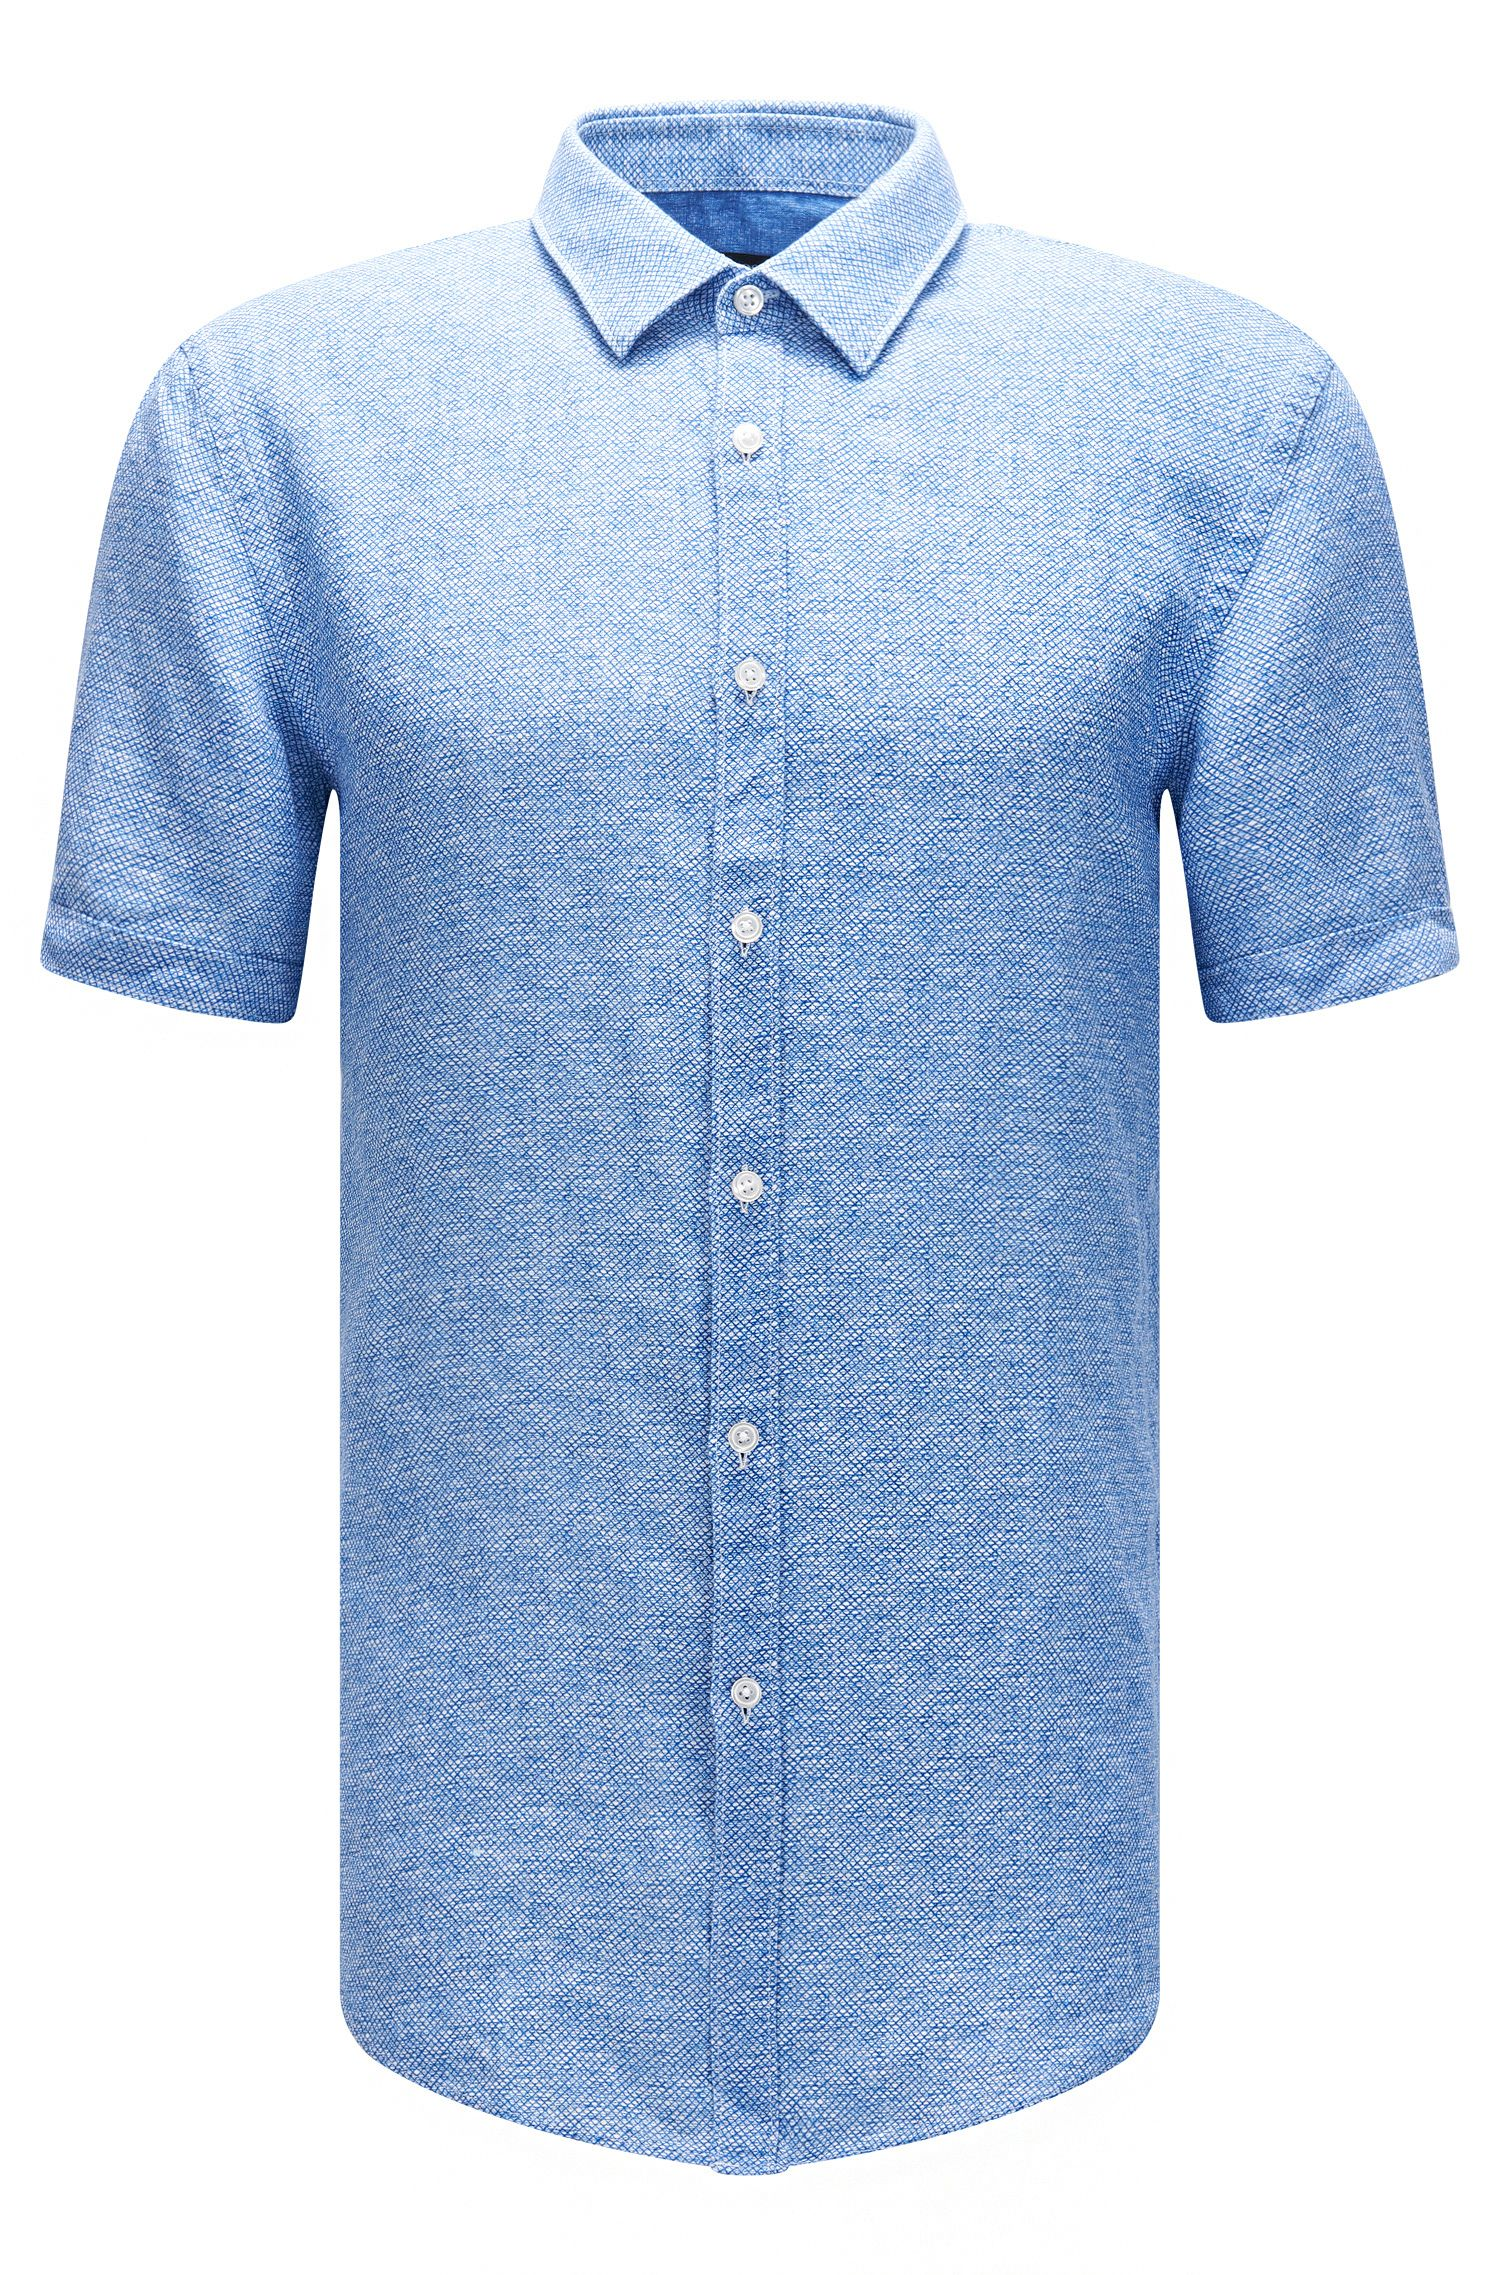 'Ronn' | Slim Fit, Linen Garment-Washed Button-Down Shirt